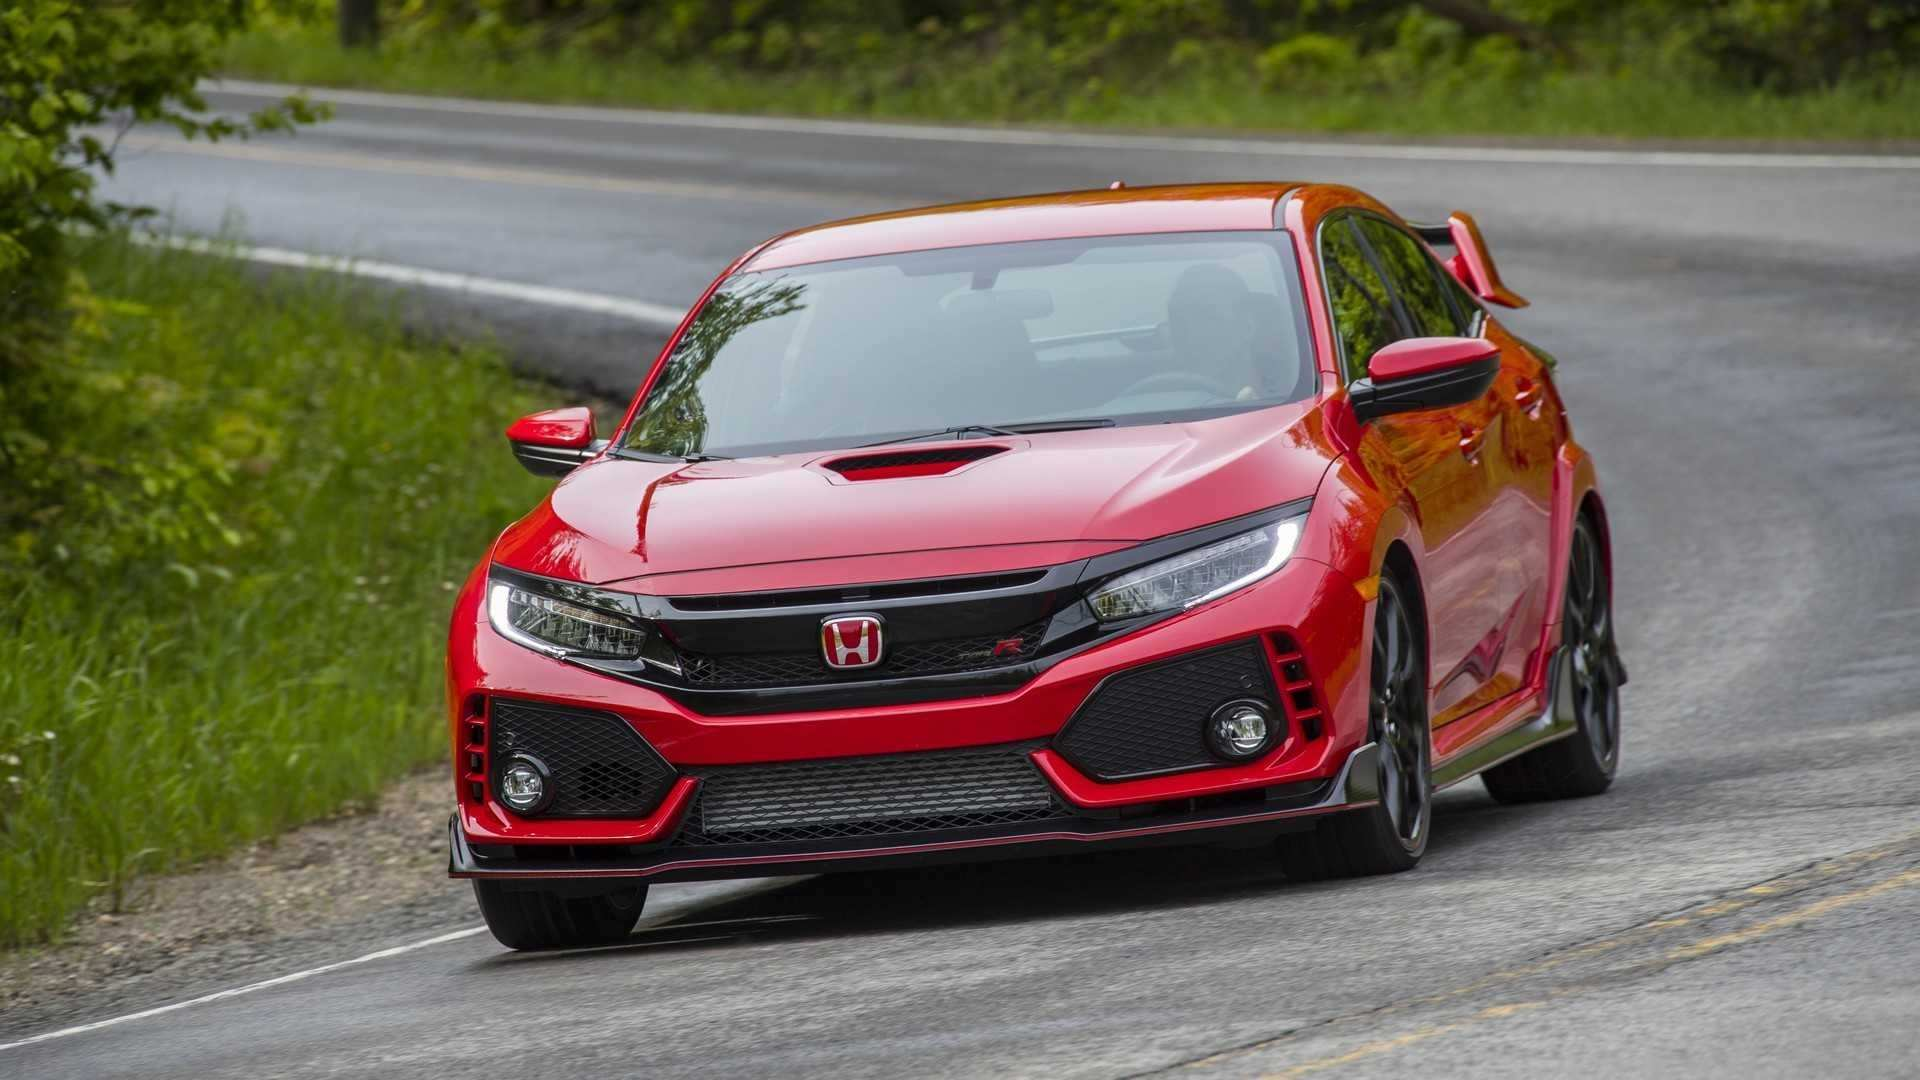 86 Best Review New Honda Type R 2019 Release Date Review And Release Date Spesification for New Honda Type R 2019 Release Date Review And Release Date